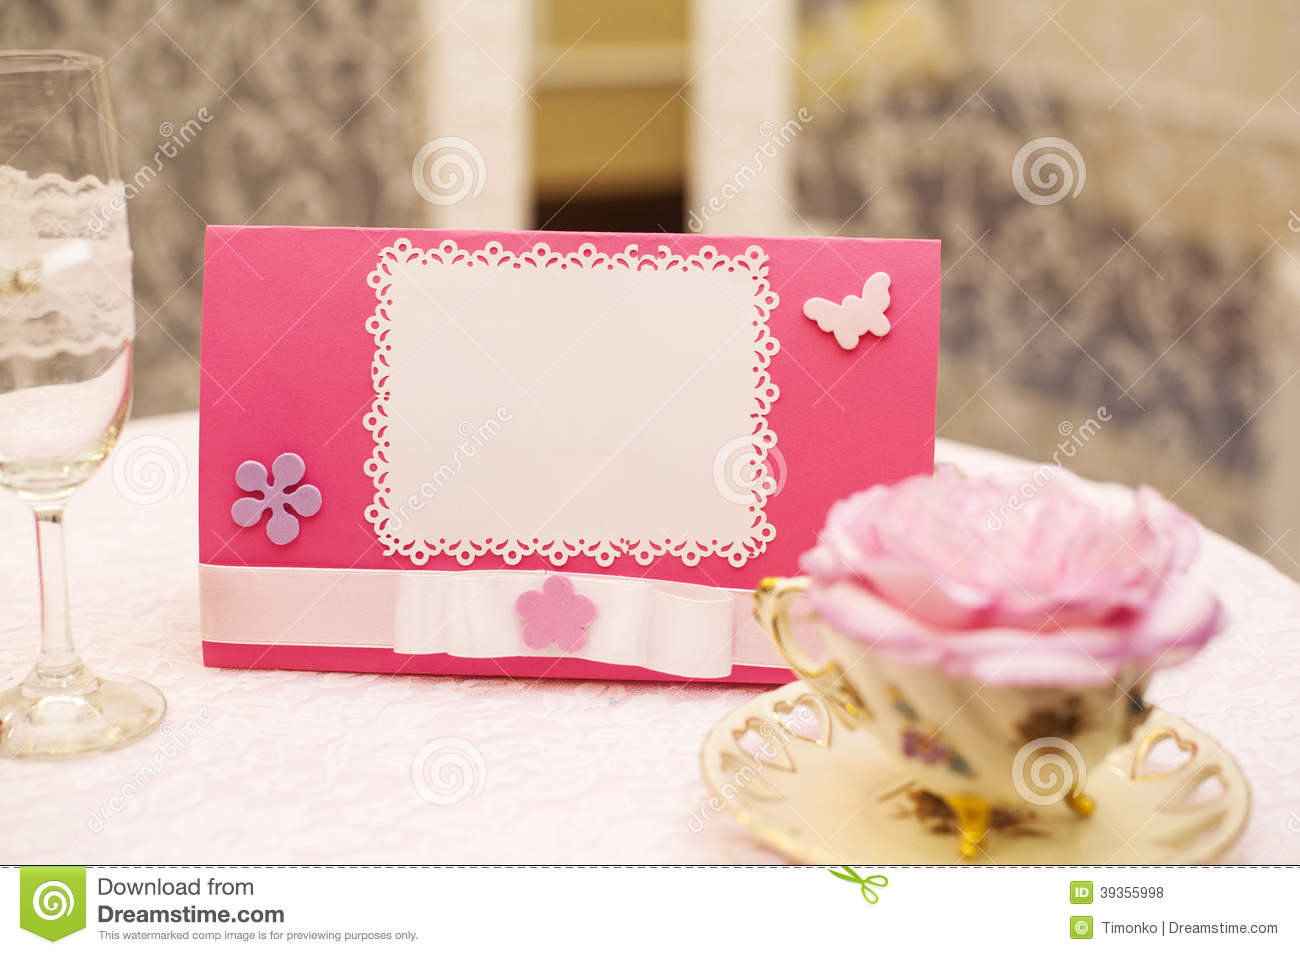 Romantic Scrapbooking With Your Text For Invitation Stock Photo ...